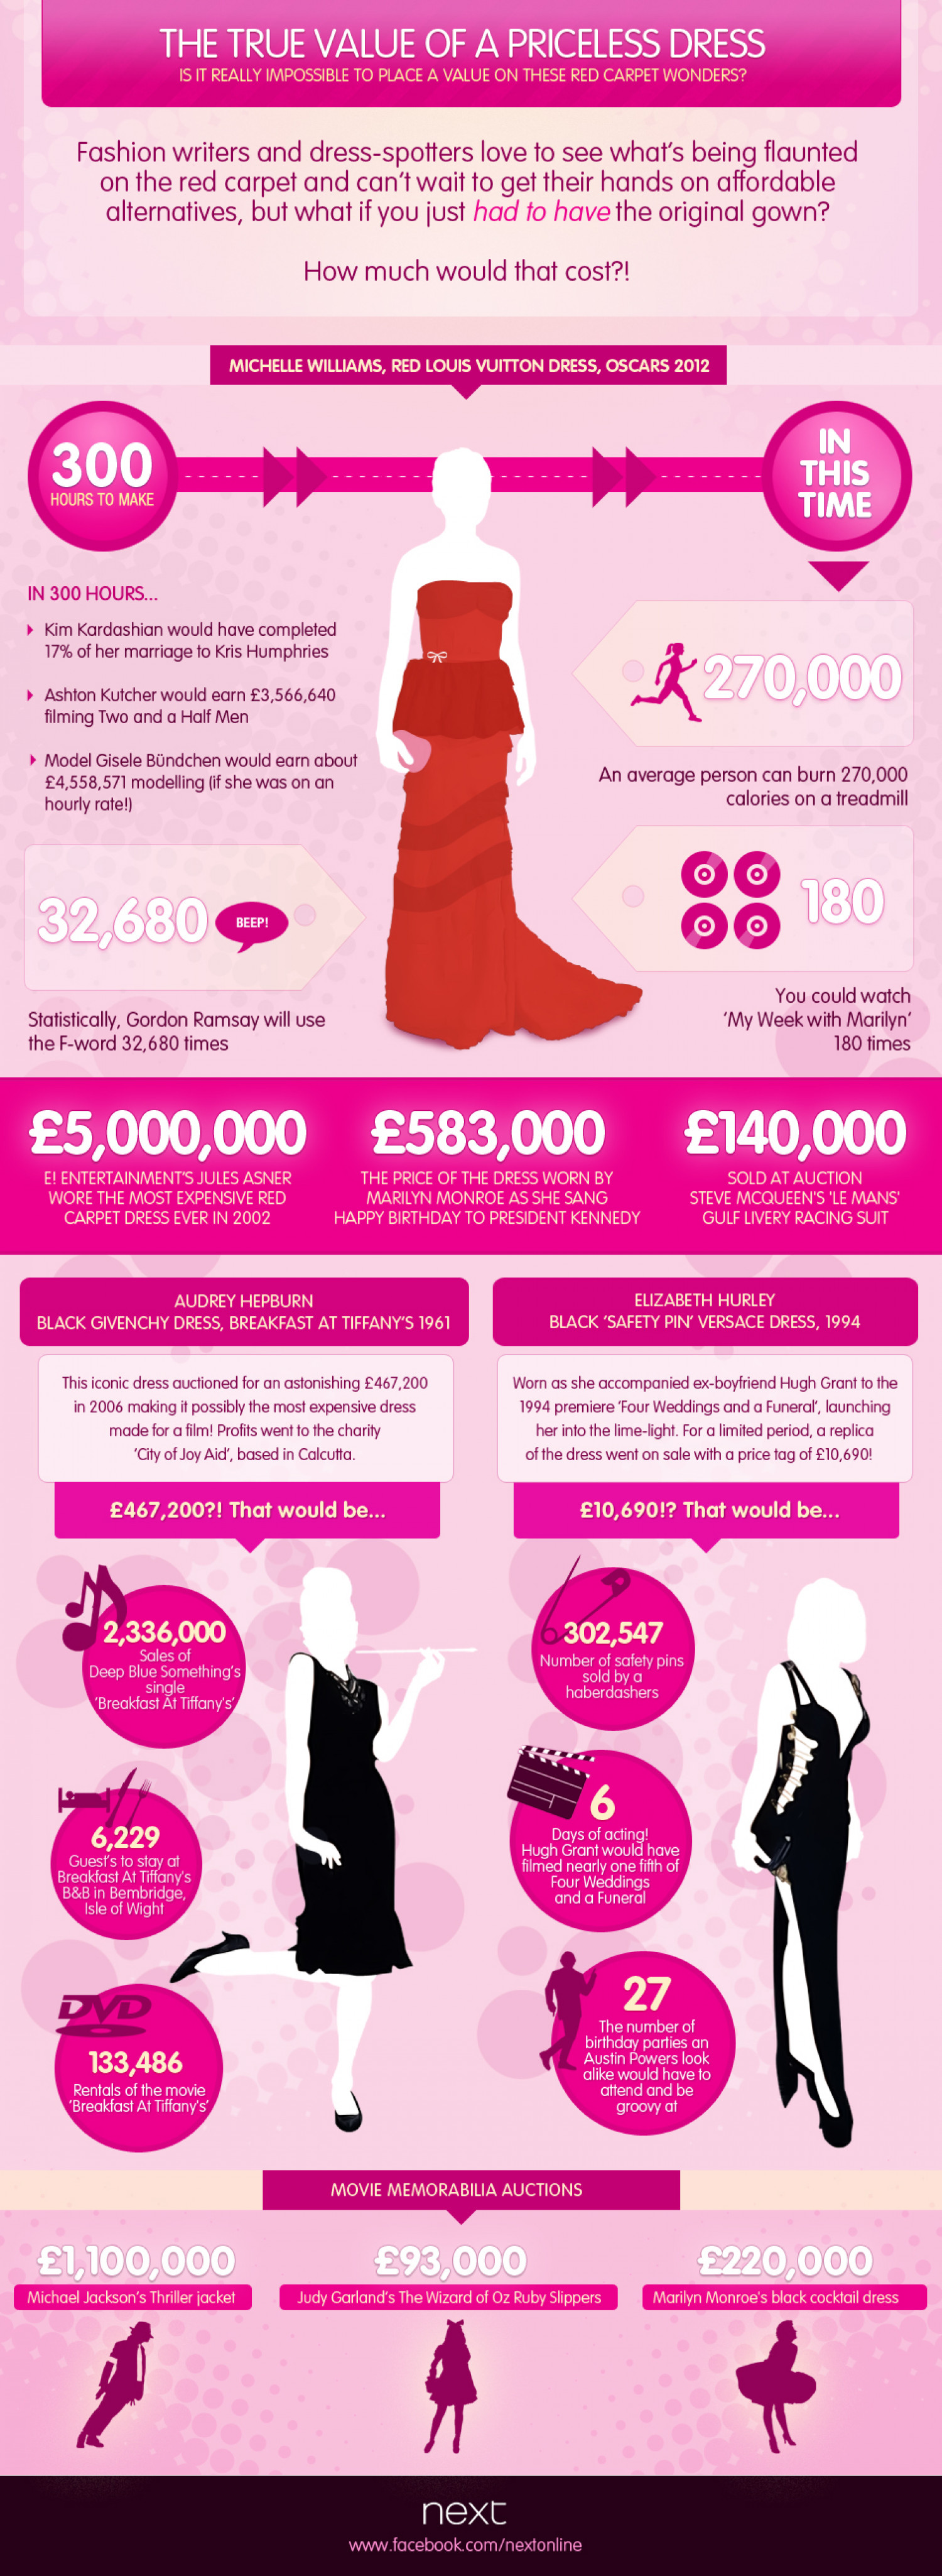 The True Value of a Dress Infographic